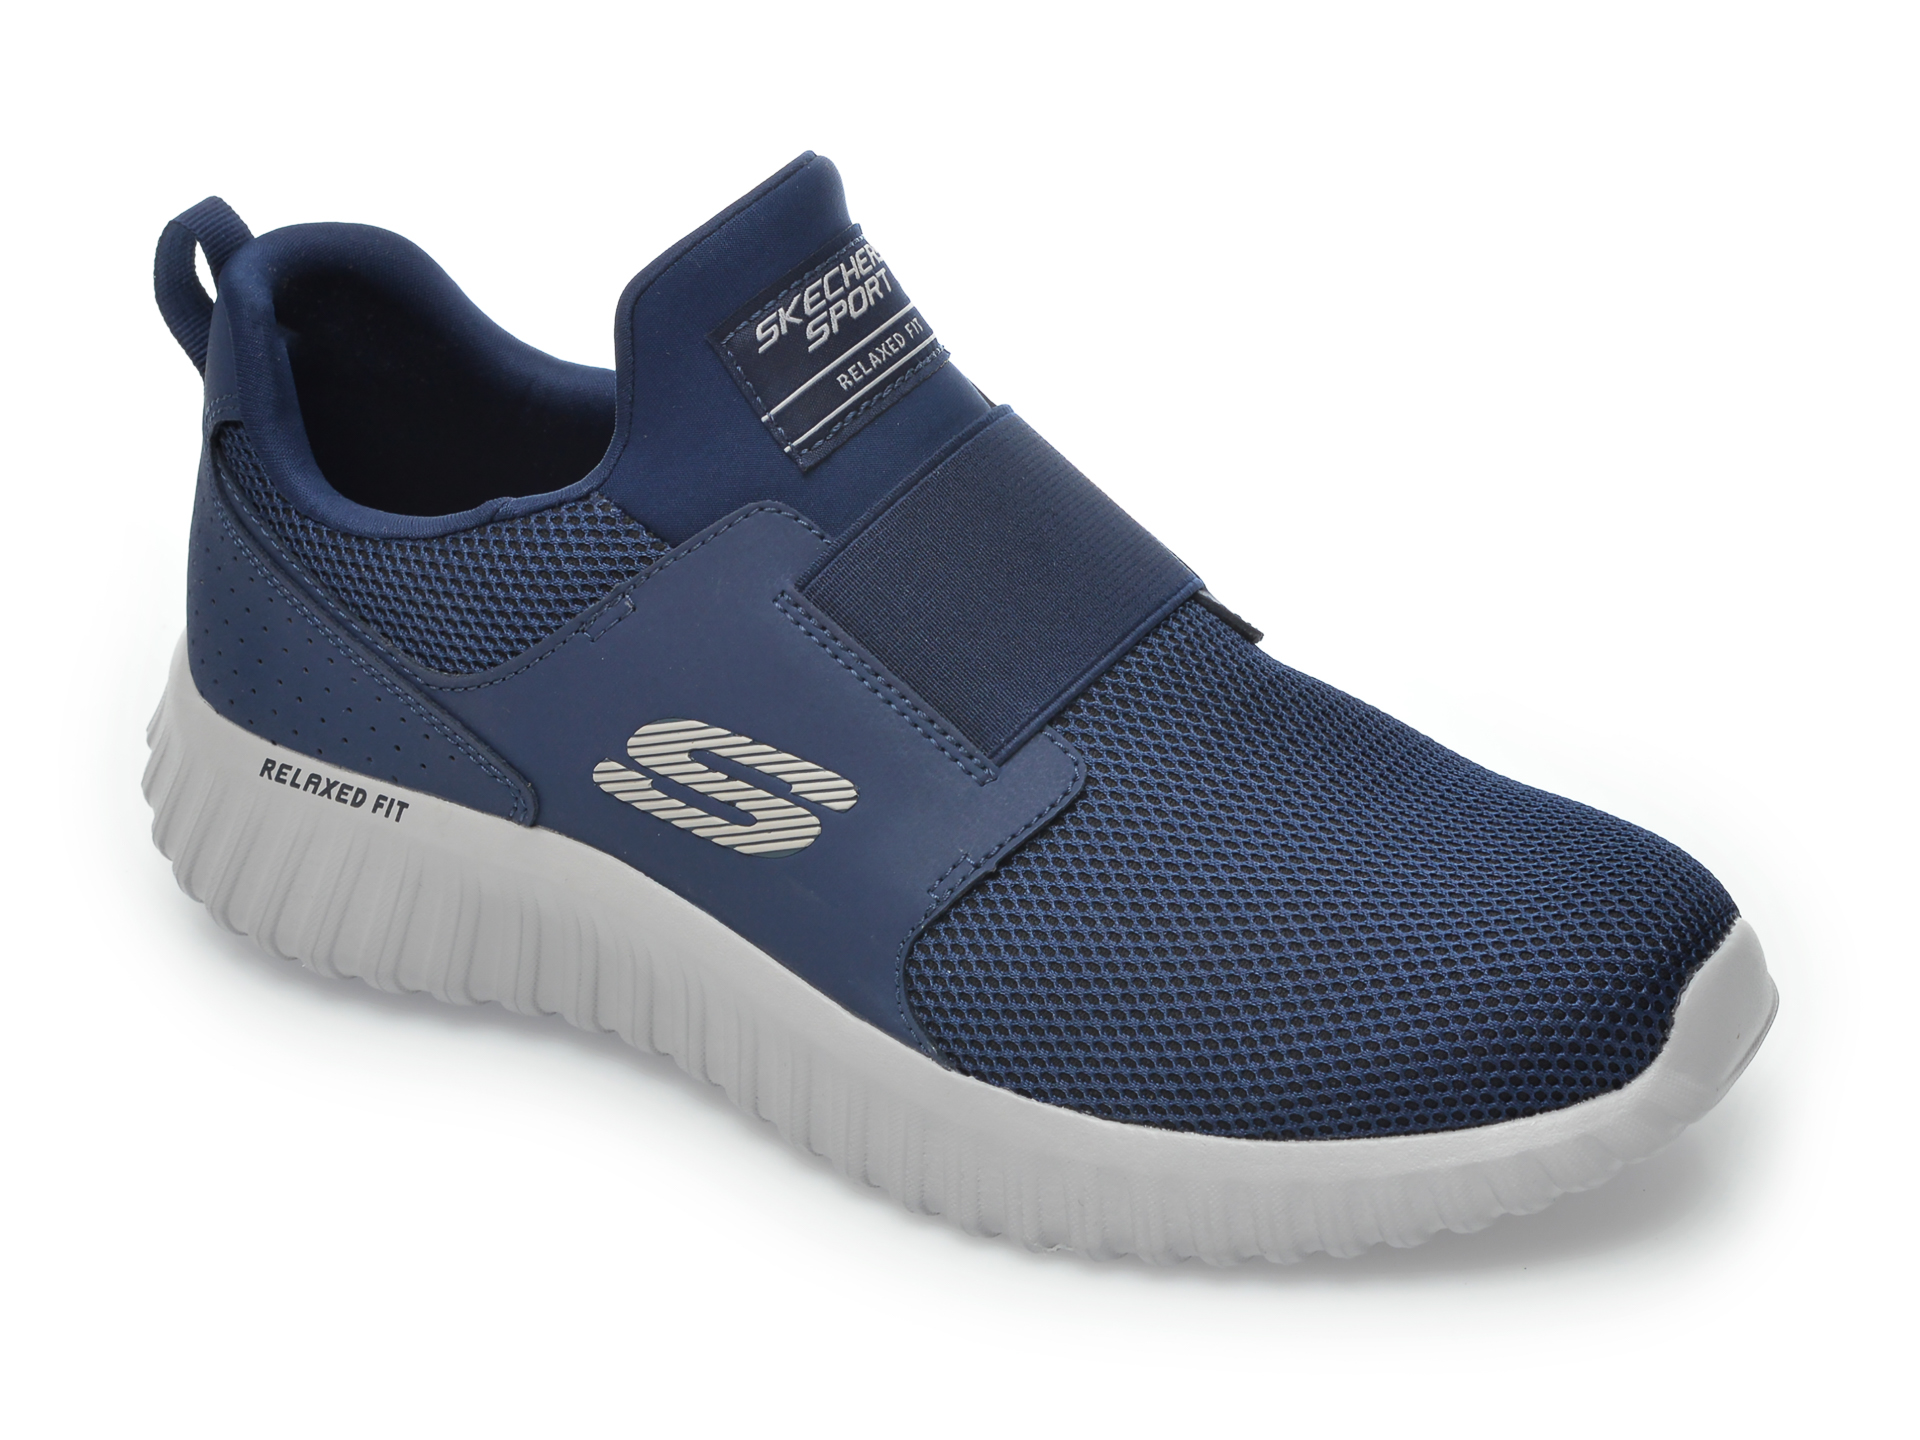 Pantofi sport SKECHERS bleumarin, Depth Charge 2.0, din material textil imagine